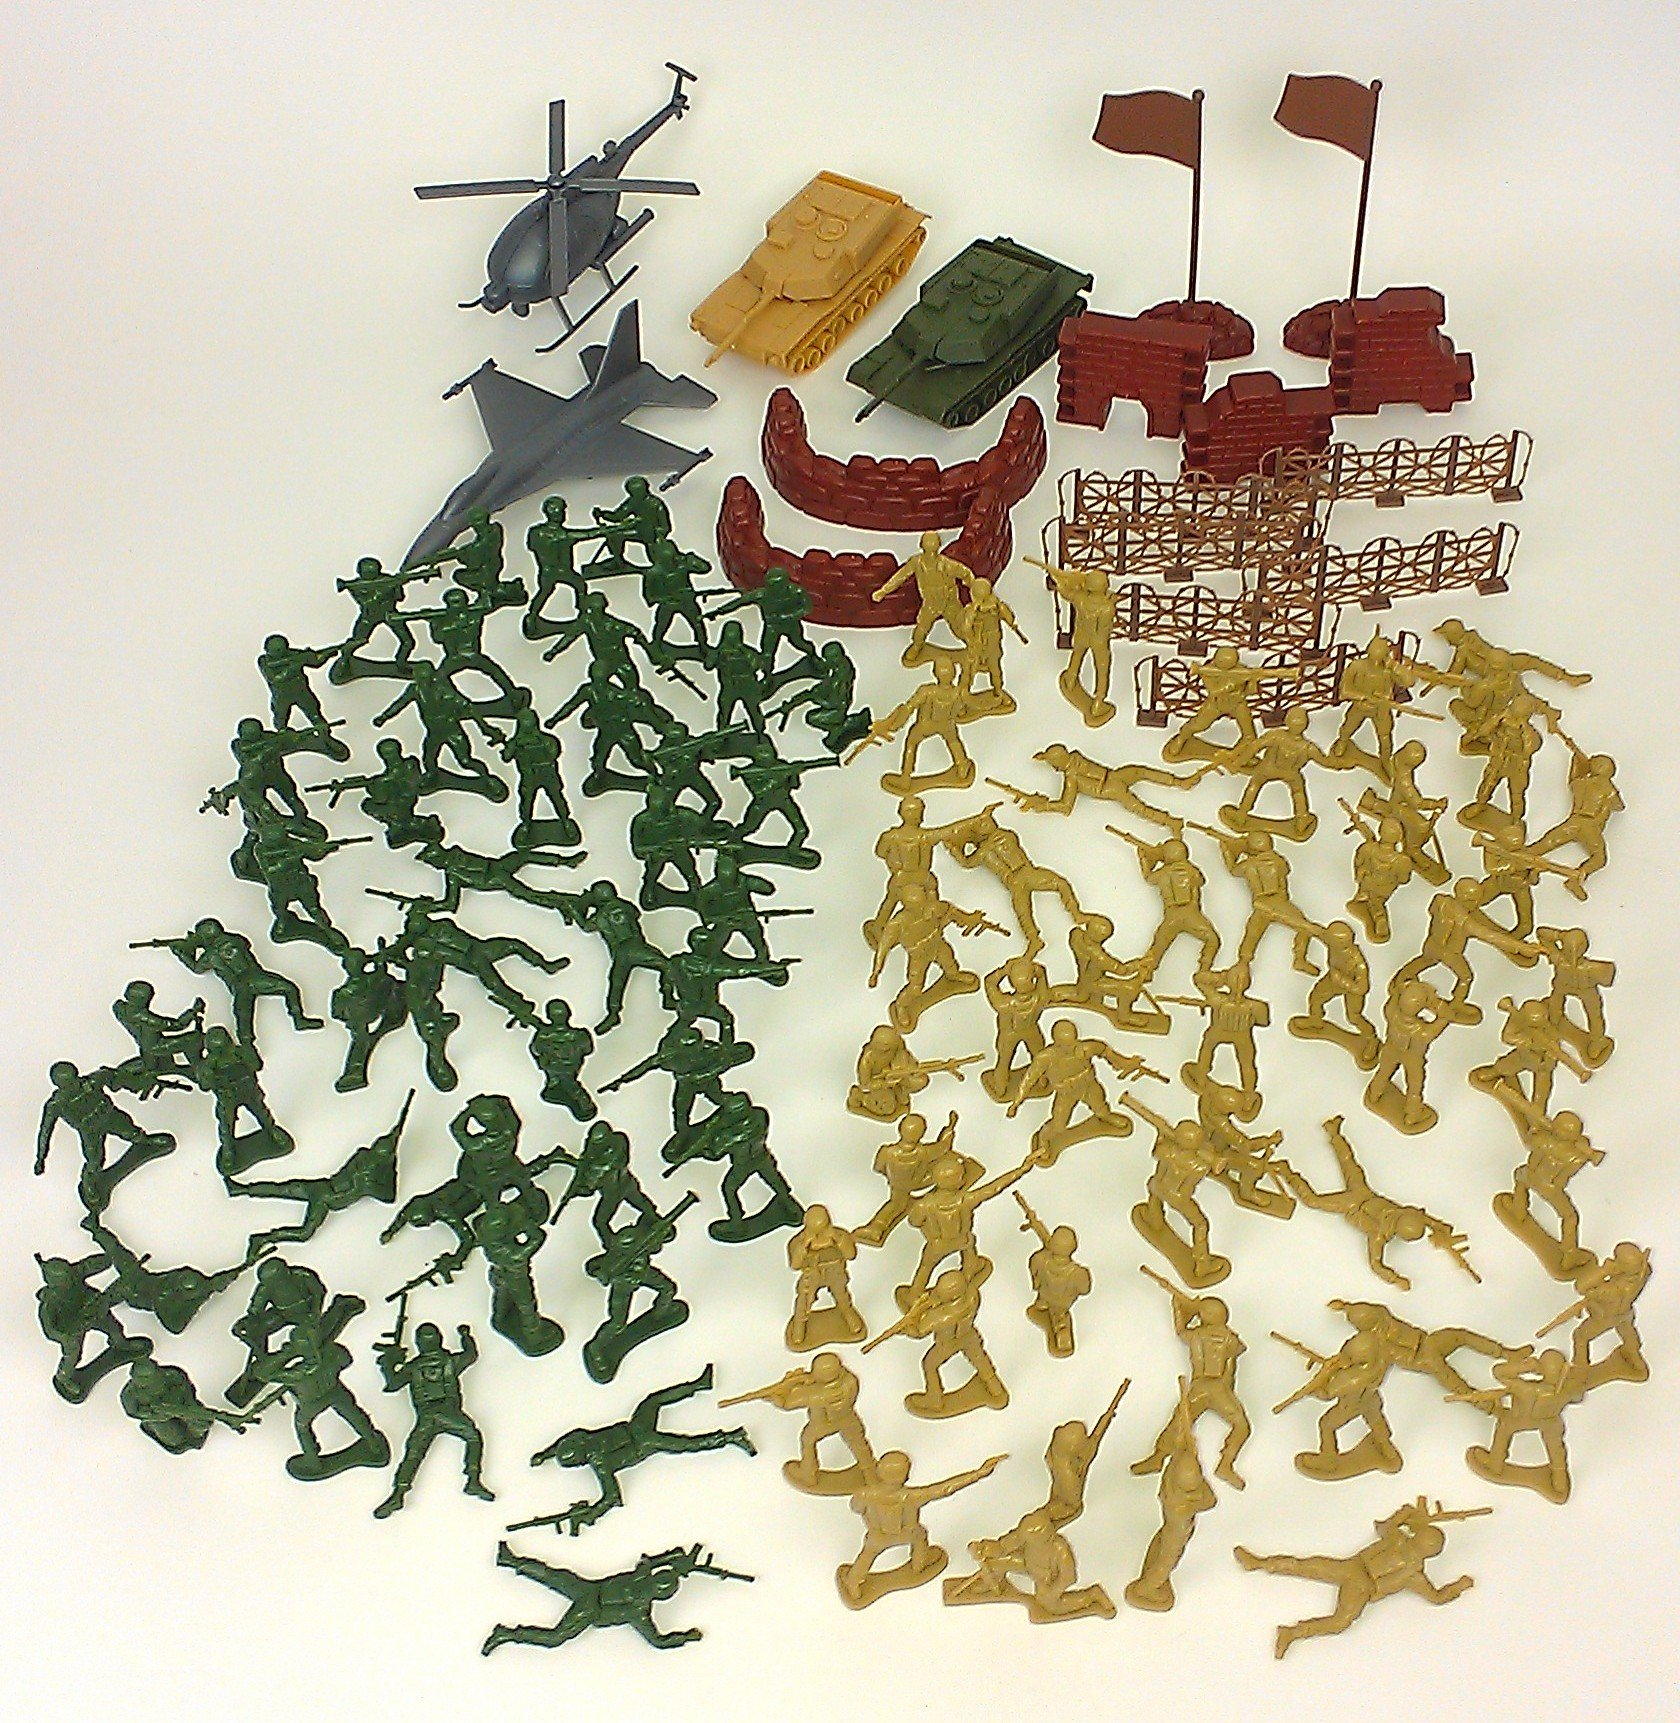 Elite Force Battle Group Army Men Play Bucket - 120 Piece Military Soldier Playset by Elite Force (Image #4)